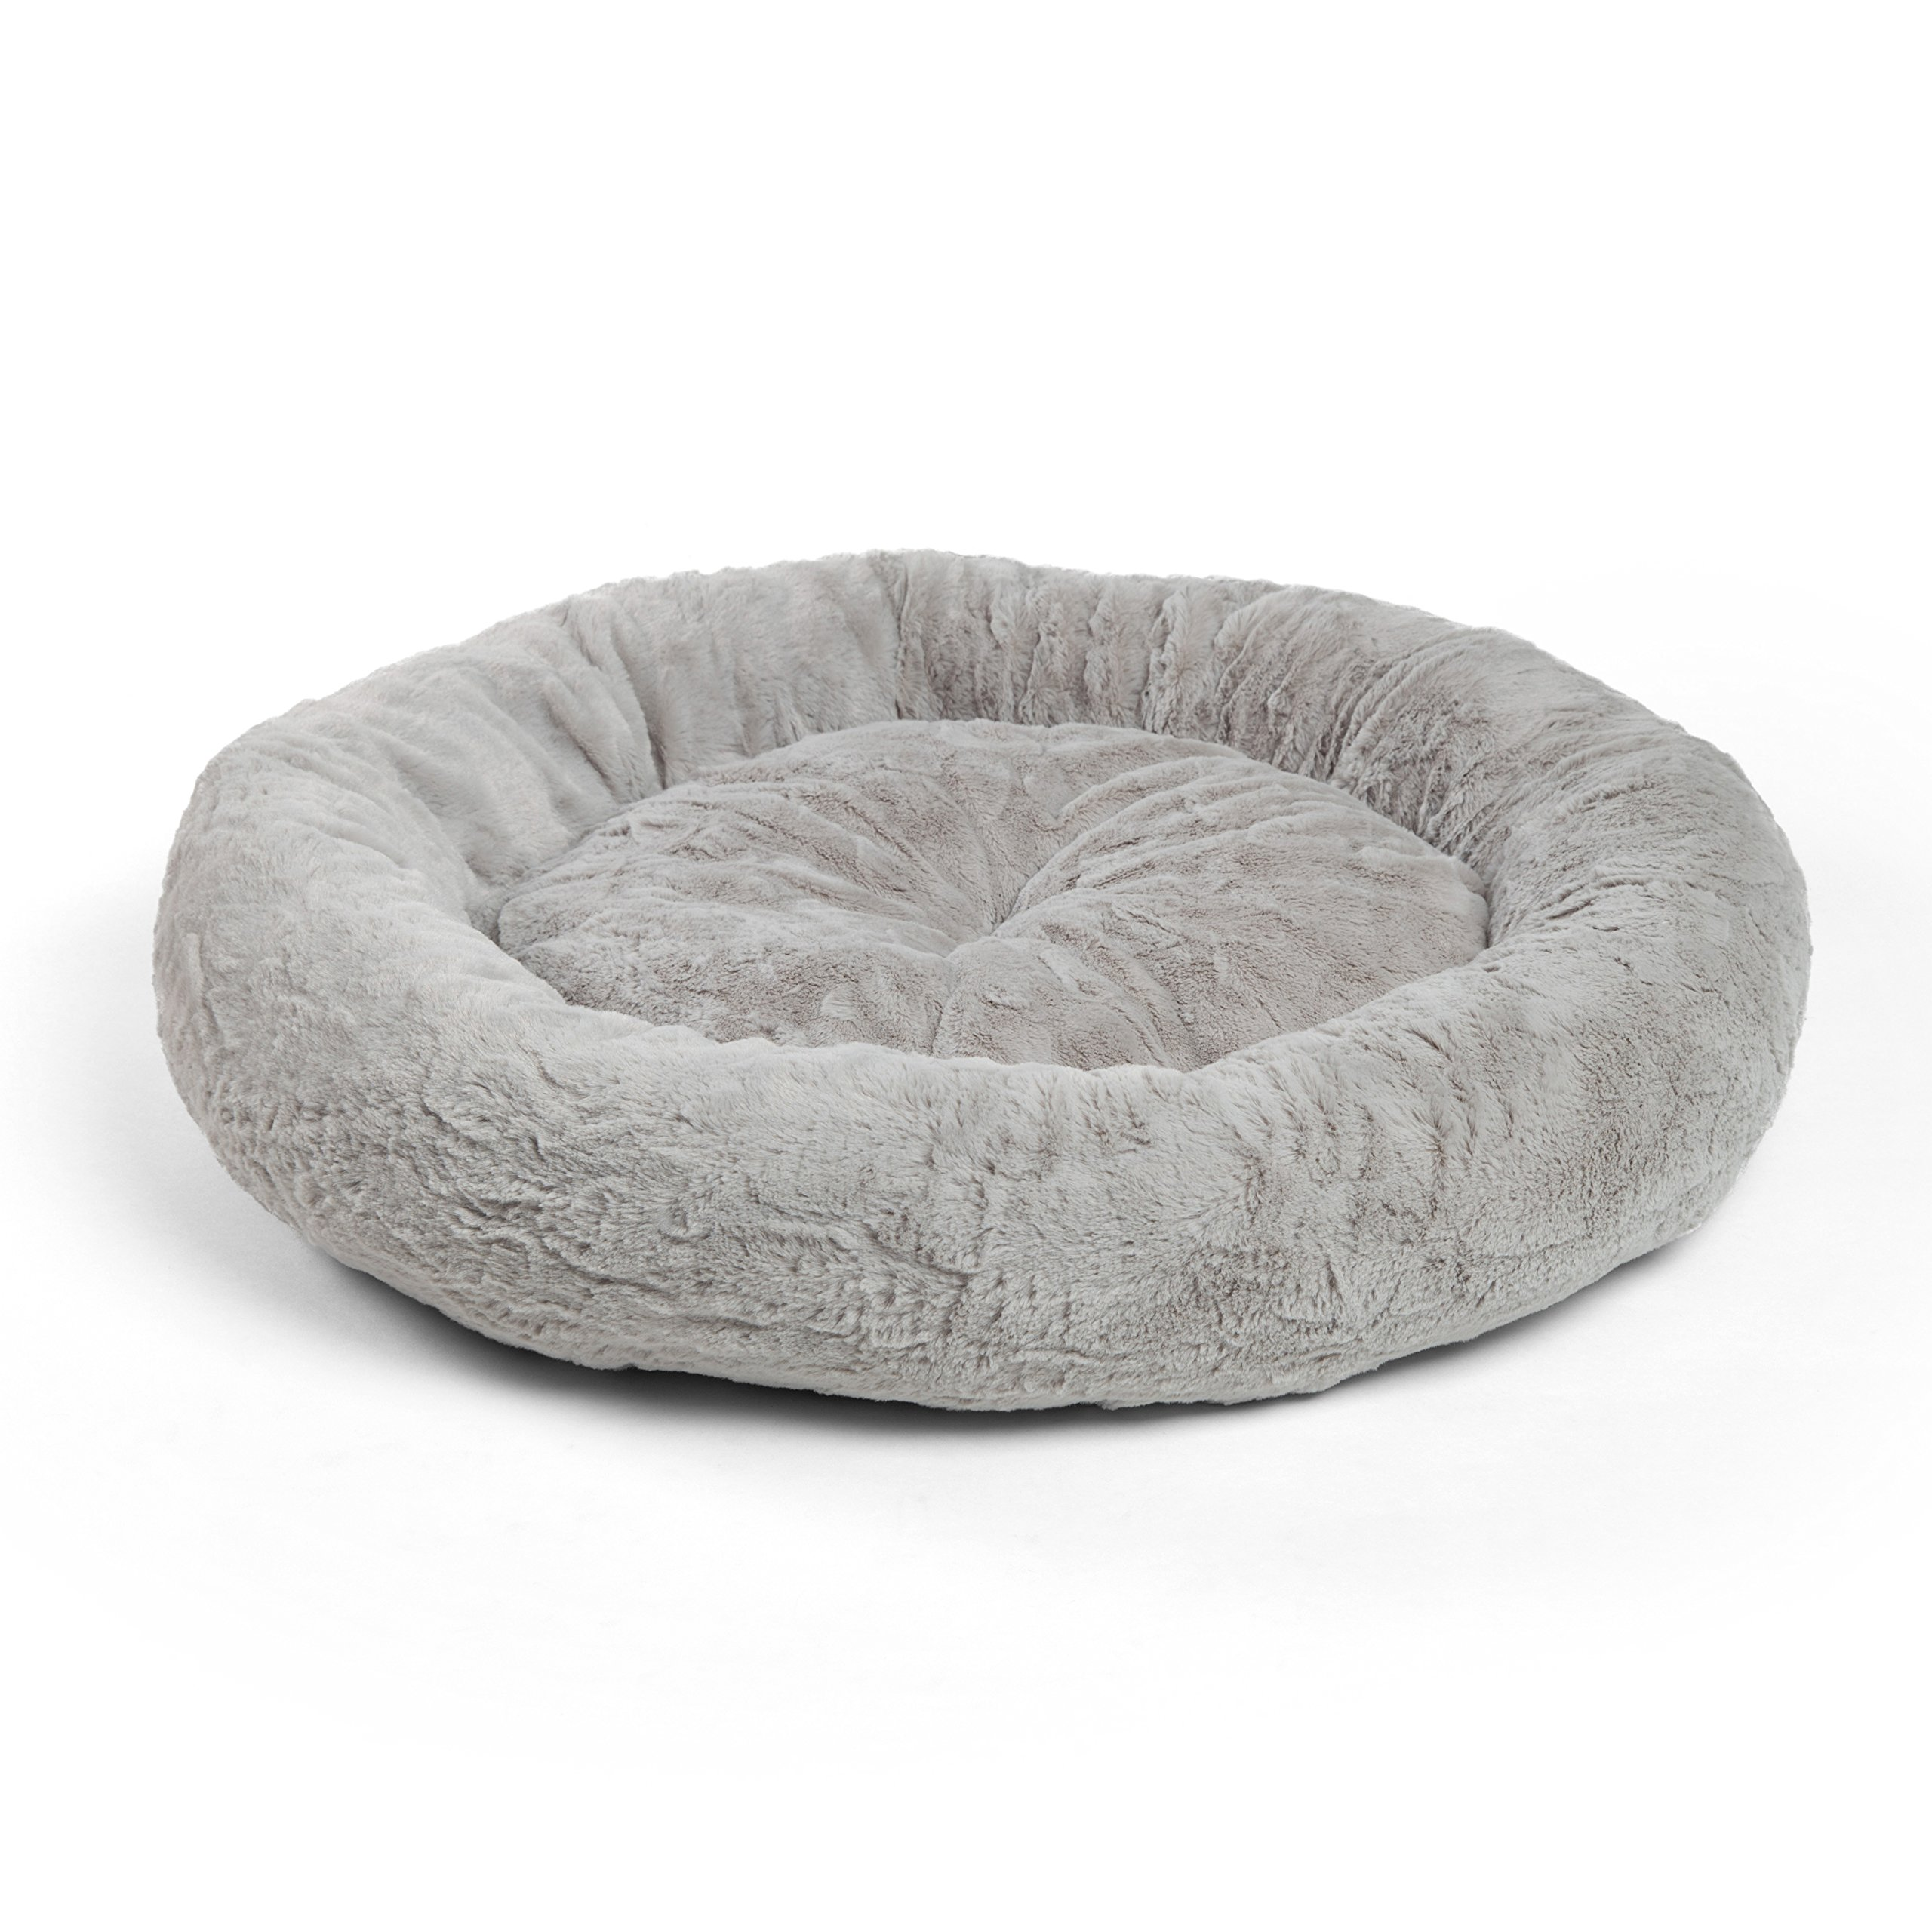 Best Friends by Sheri DNT-LUX-GRY-3030 Donut Cuddler, Gray, Medium by Best Friends by Sheri (Image #1)